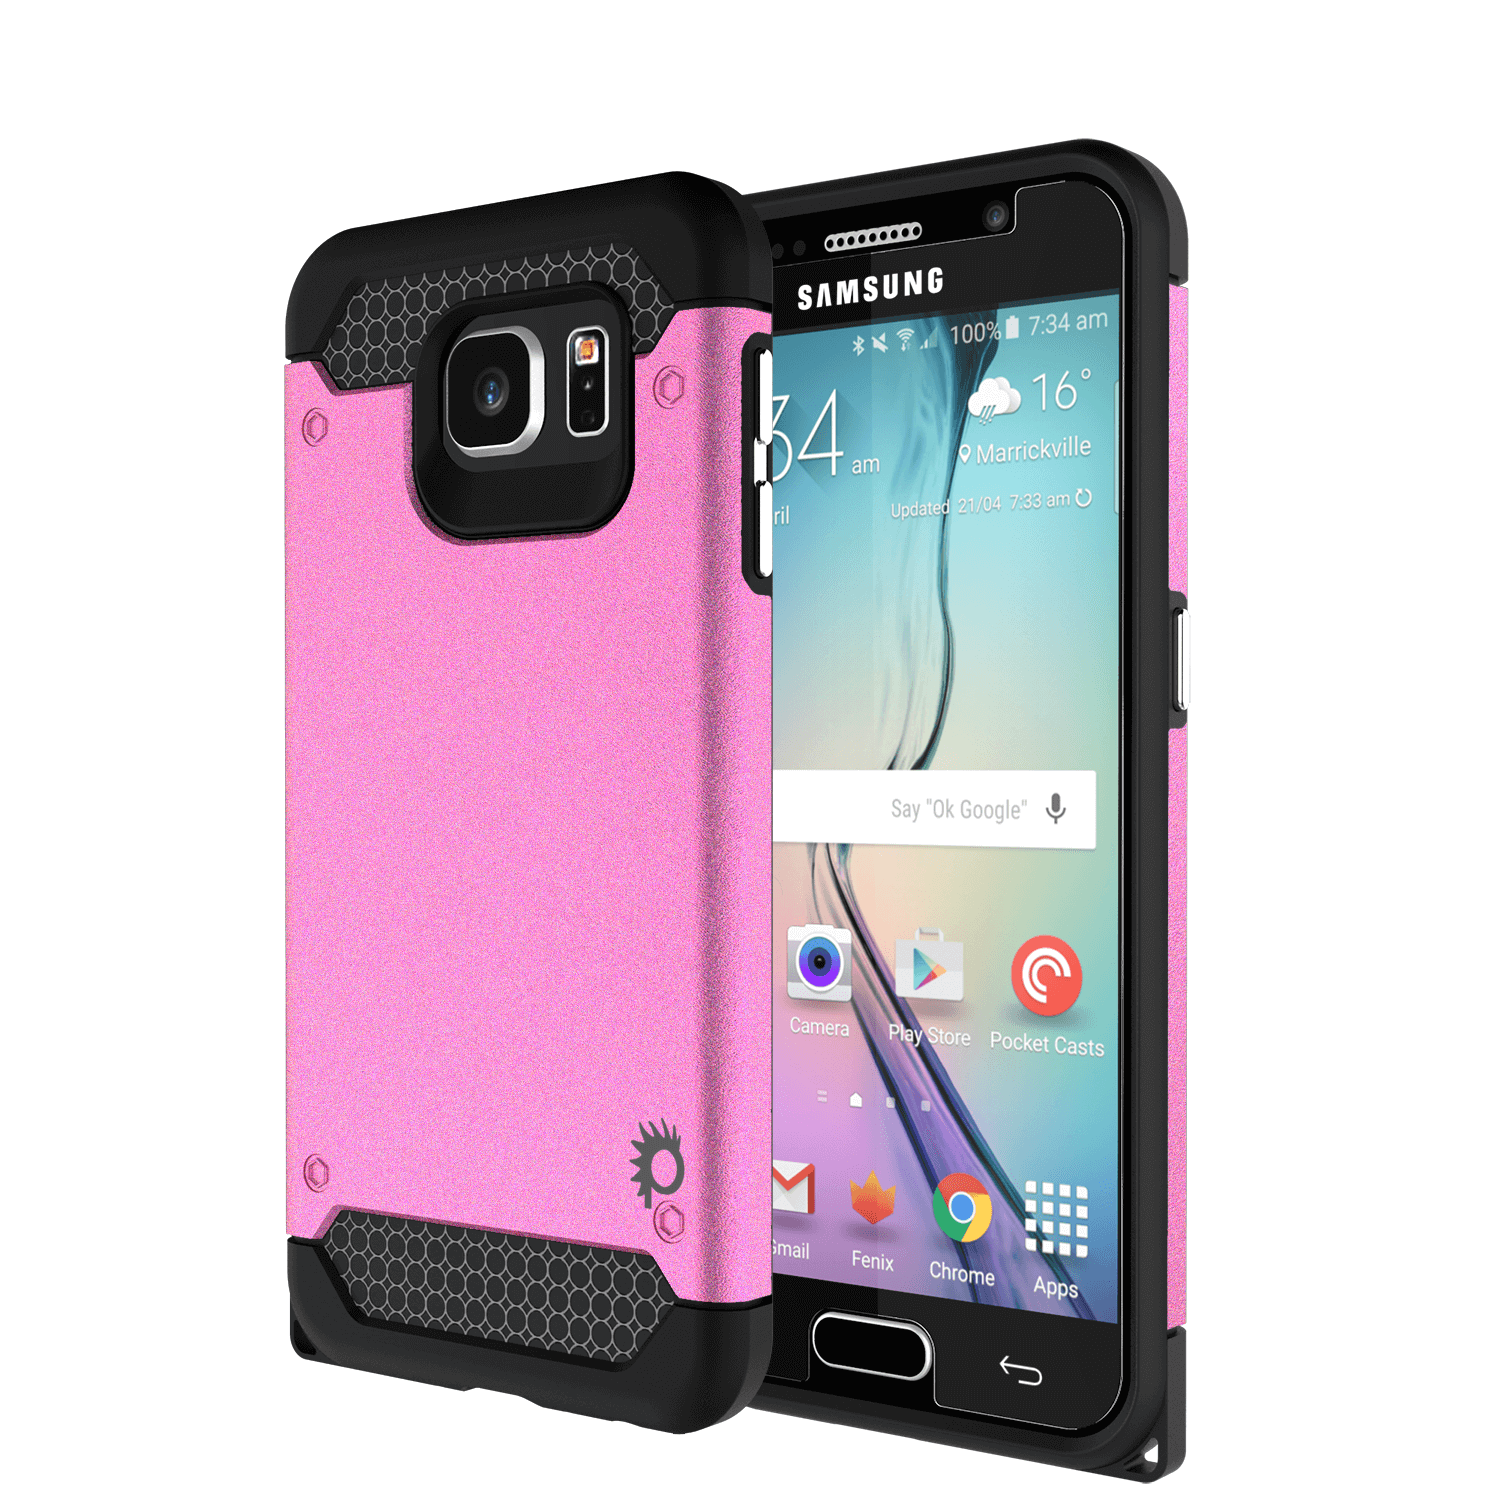 Galaxy s6Case PunkCase Galactic Pink Series Slim Protective Armor Soft Cover Case w/ Tempered Glass Protector Lifetime Warranty